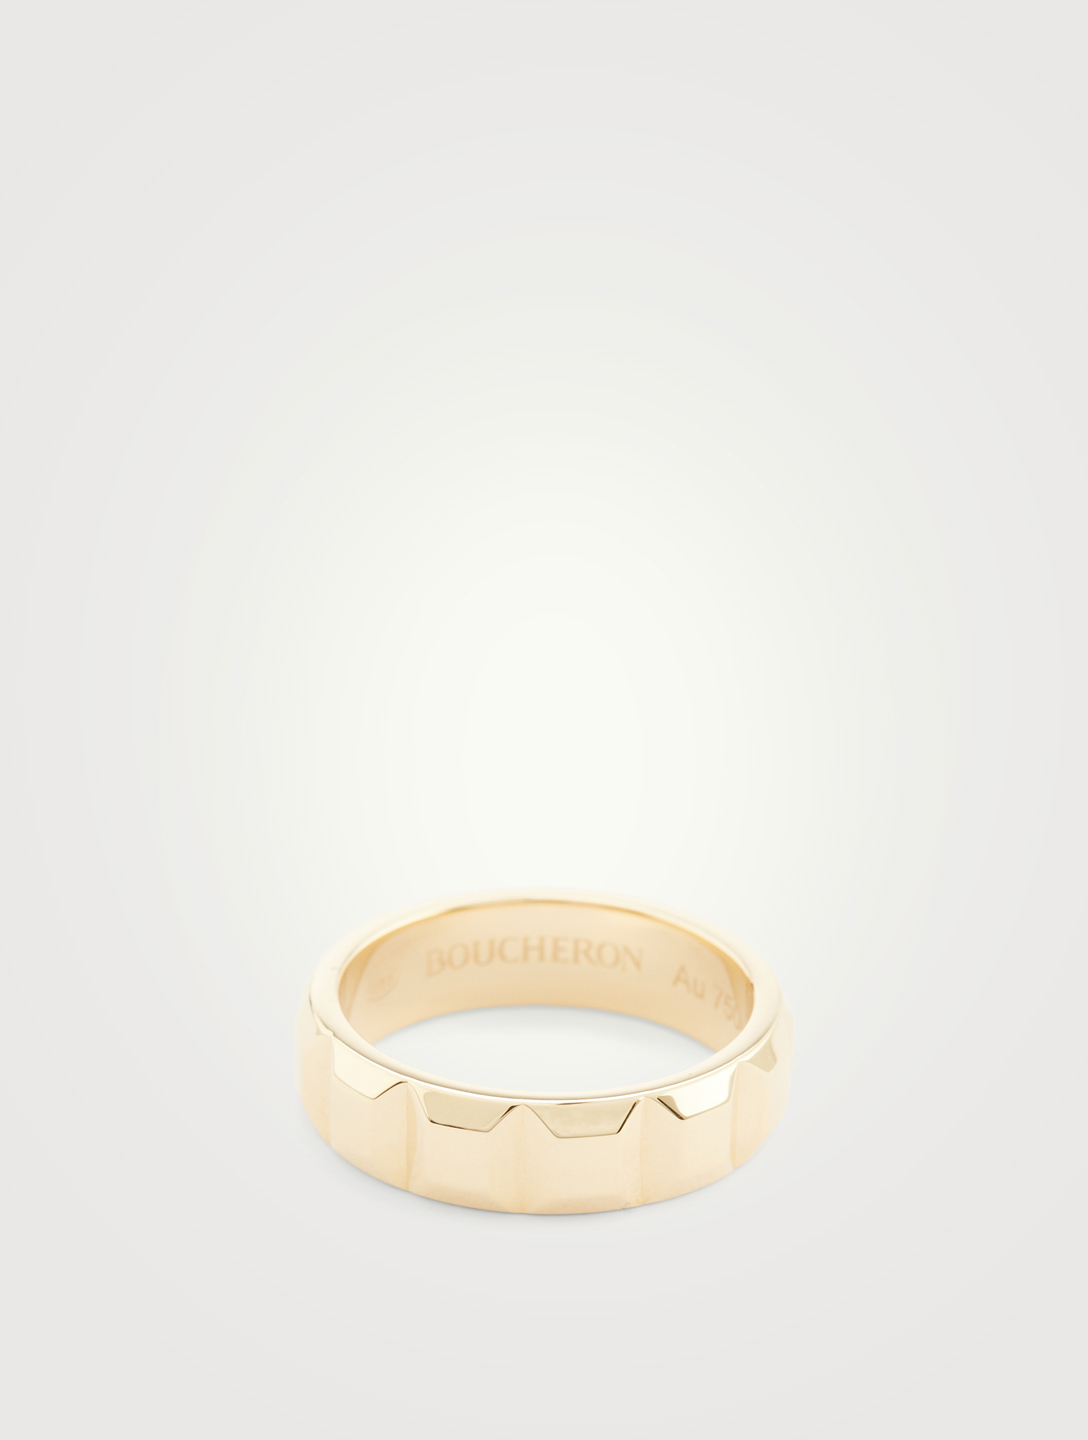 BOUCHERON Quatre Clou De Paris Gold Ring Women's Gold